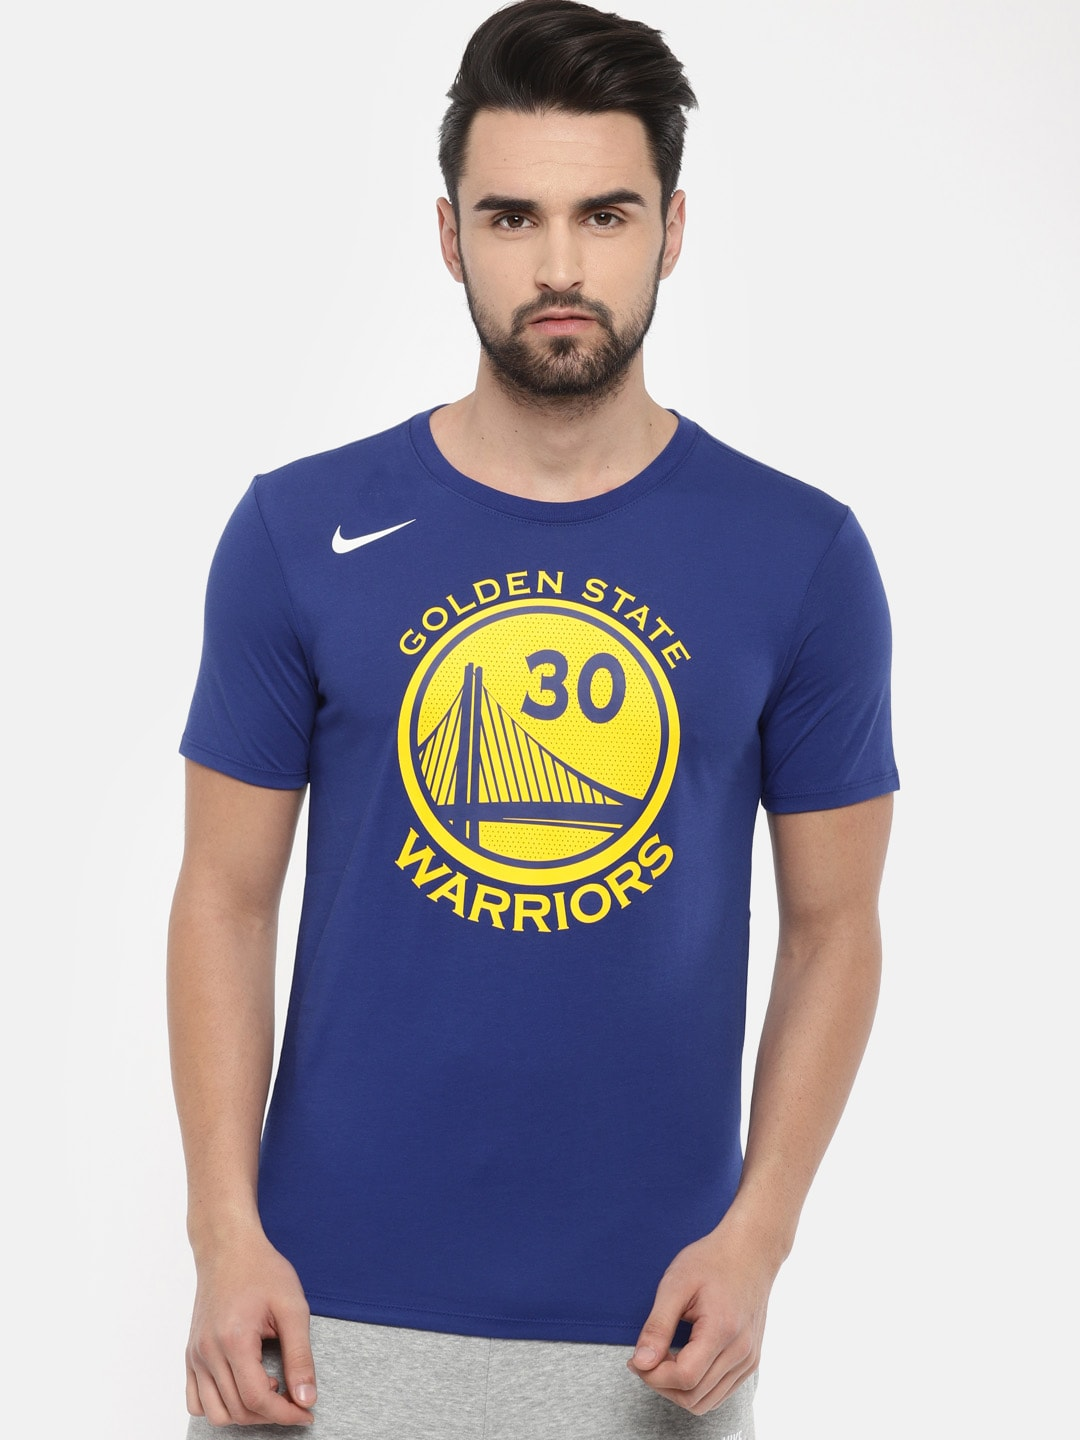 9e94ff72a9a Football Jerseys - Buy Football Jersey Online in India